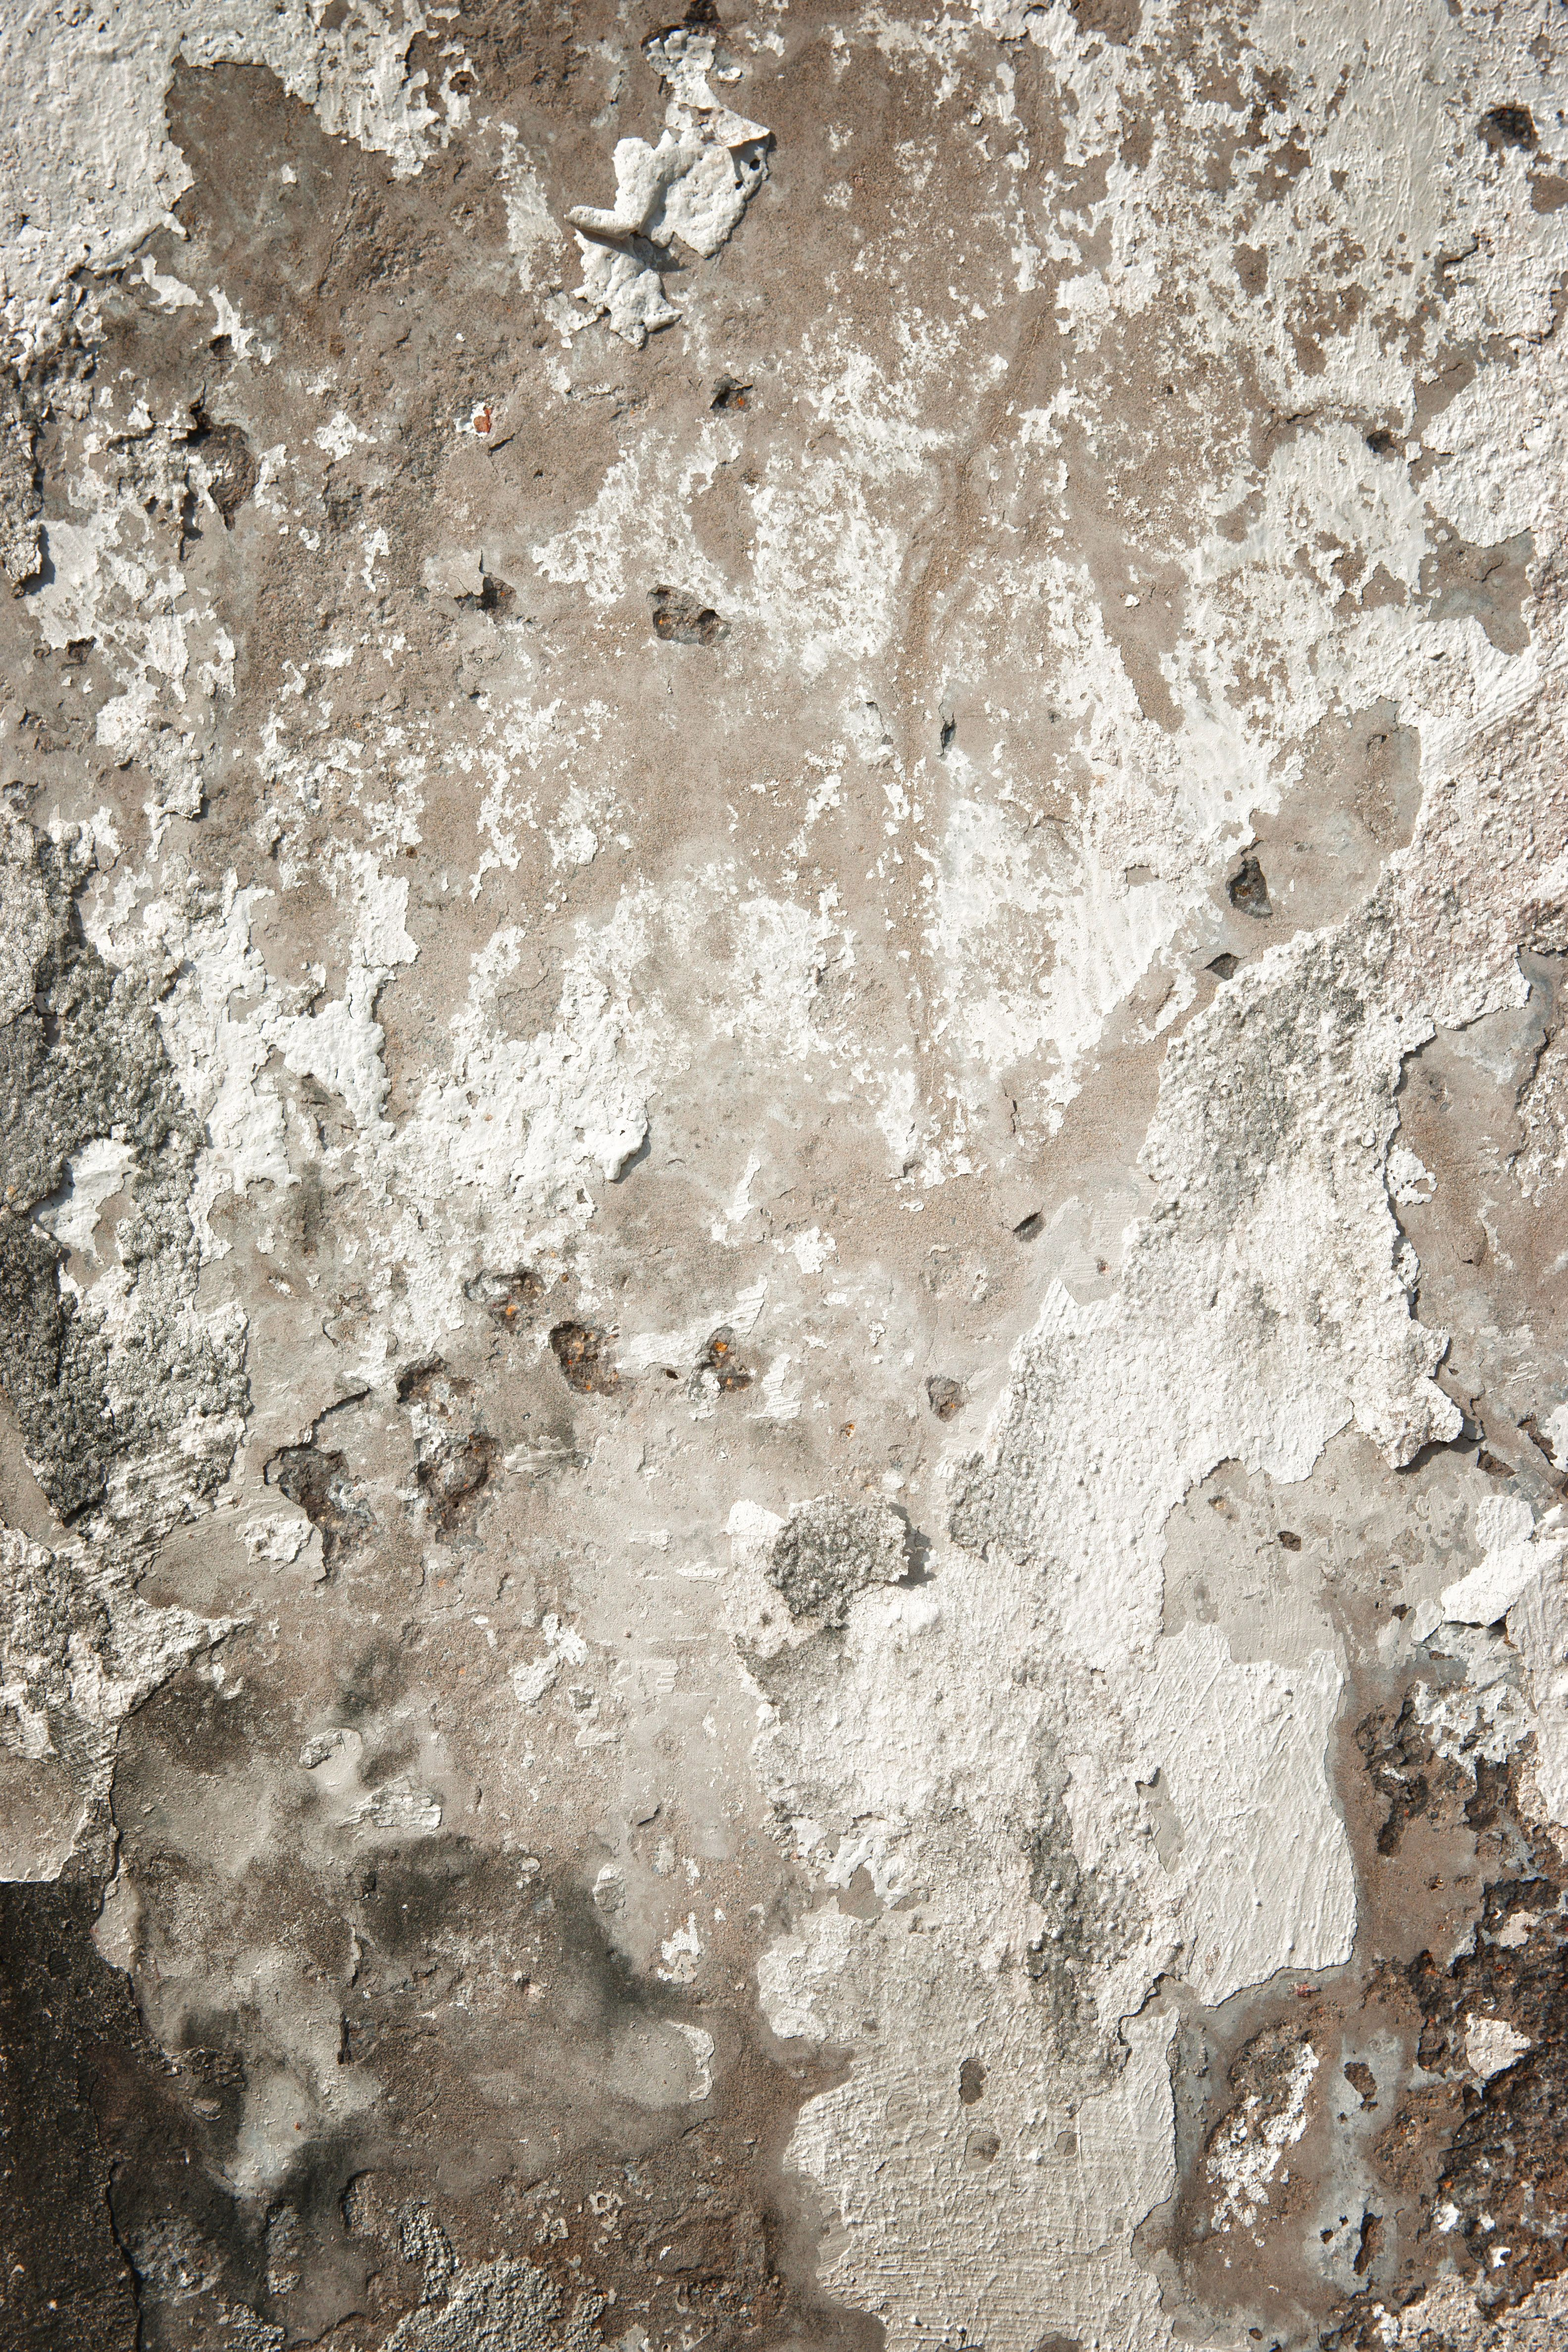 grunge texture of old concrete wall Photo background